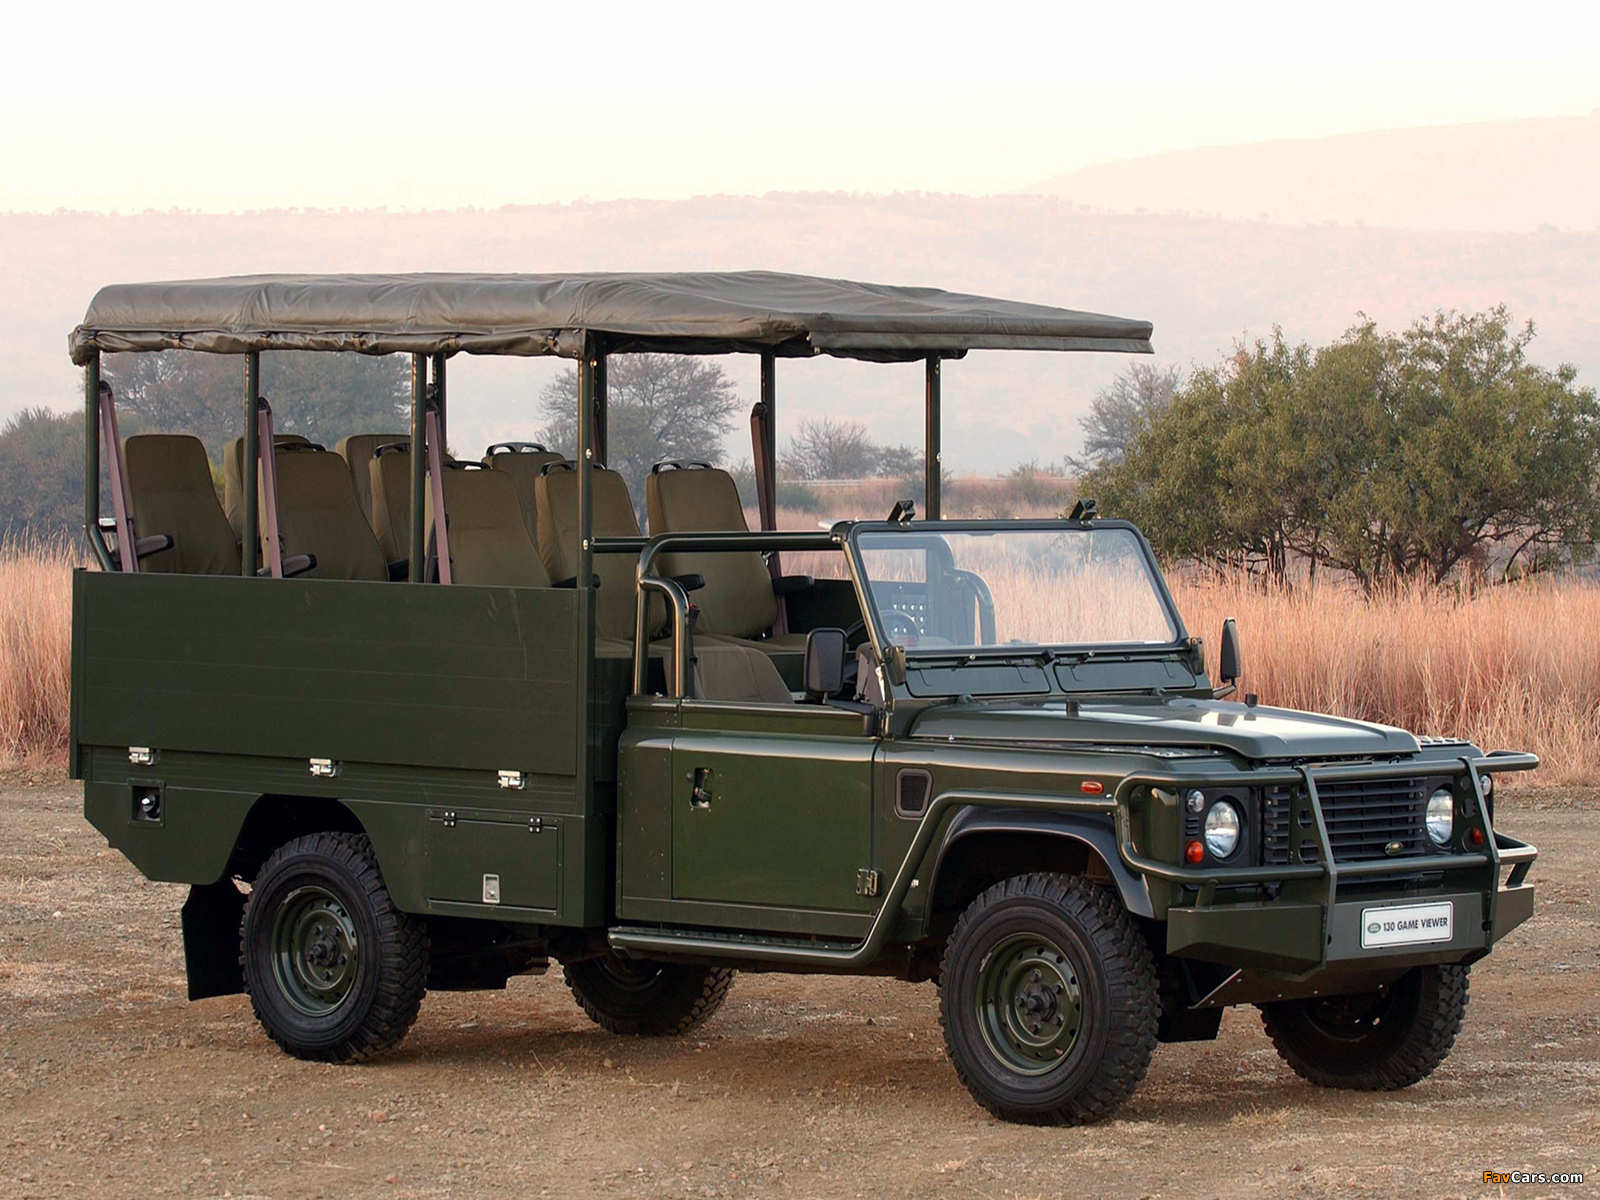 Land Rover Defender 130 Game Viewer wallpapers (1600 x 1200)